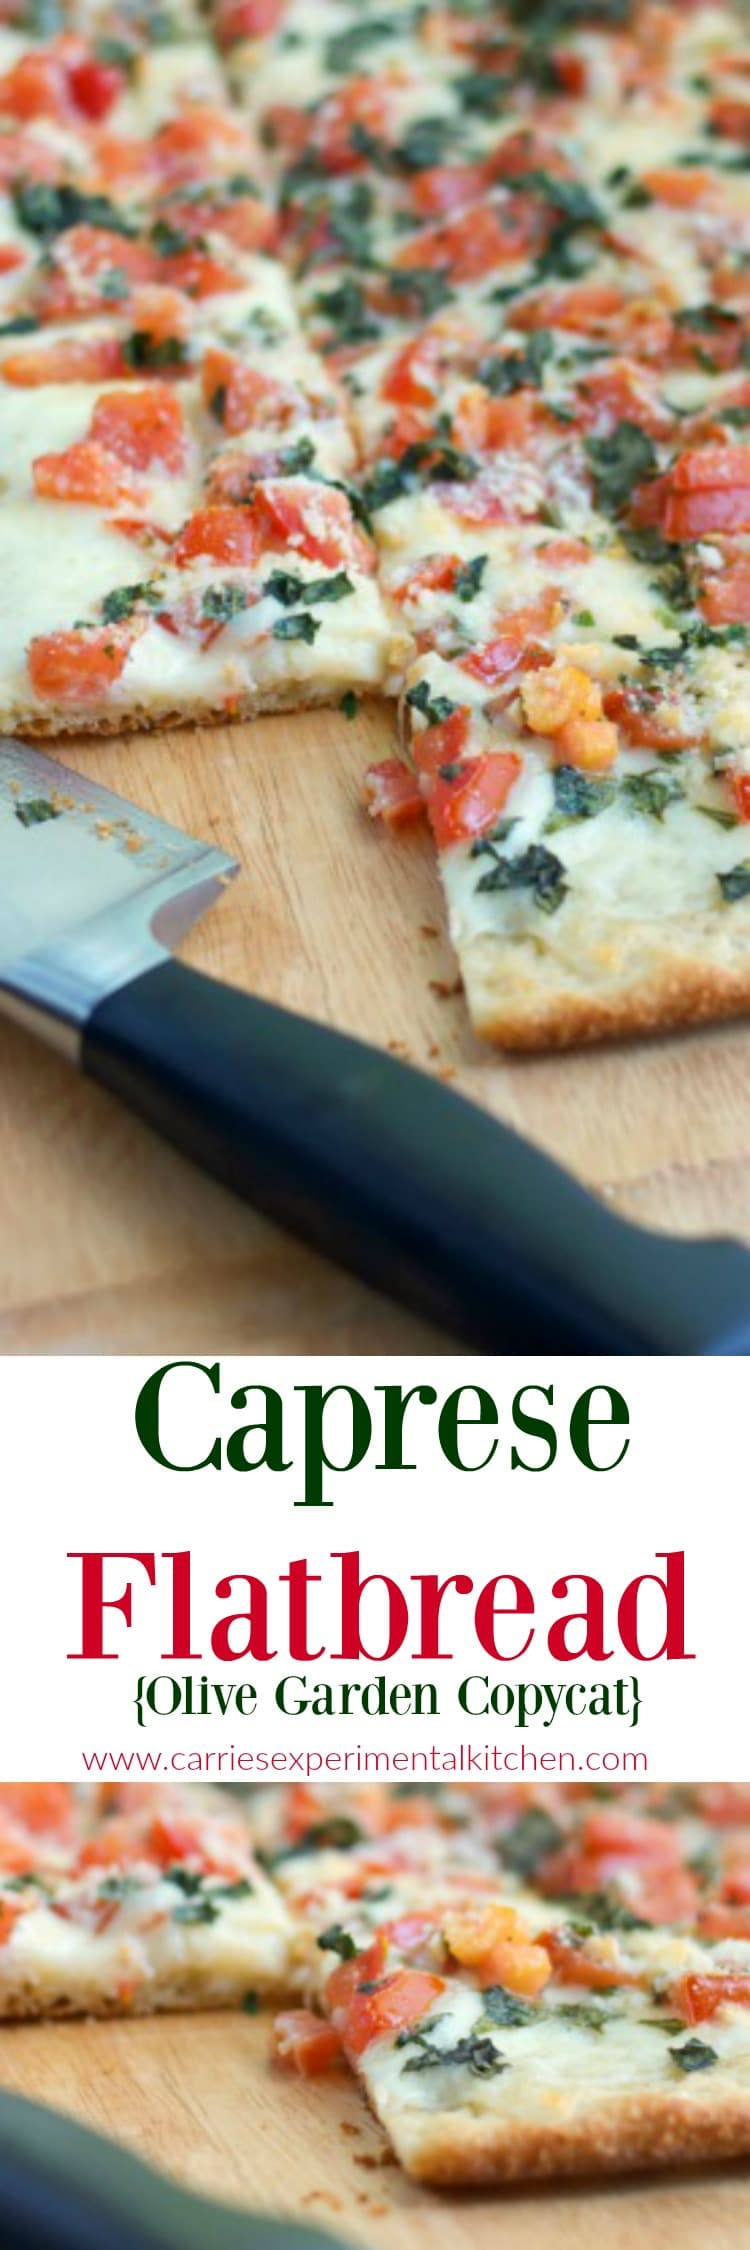 Make This Olive Garden Favorite Appetizer, Caprese Flatbread Made With  Fresh Tomatoes, Basil And